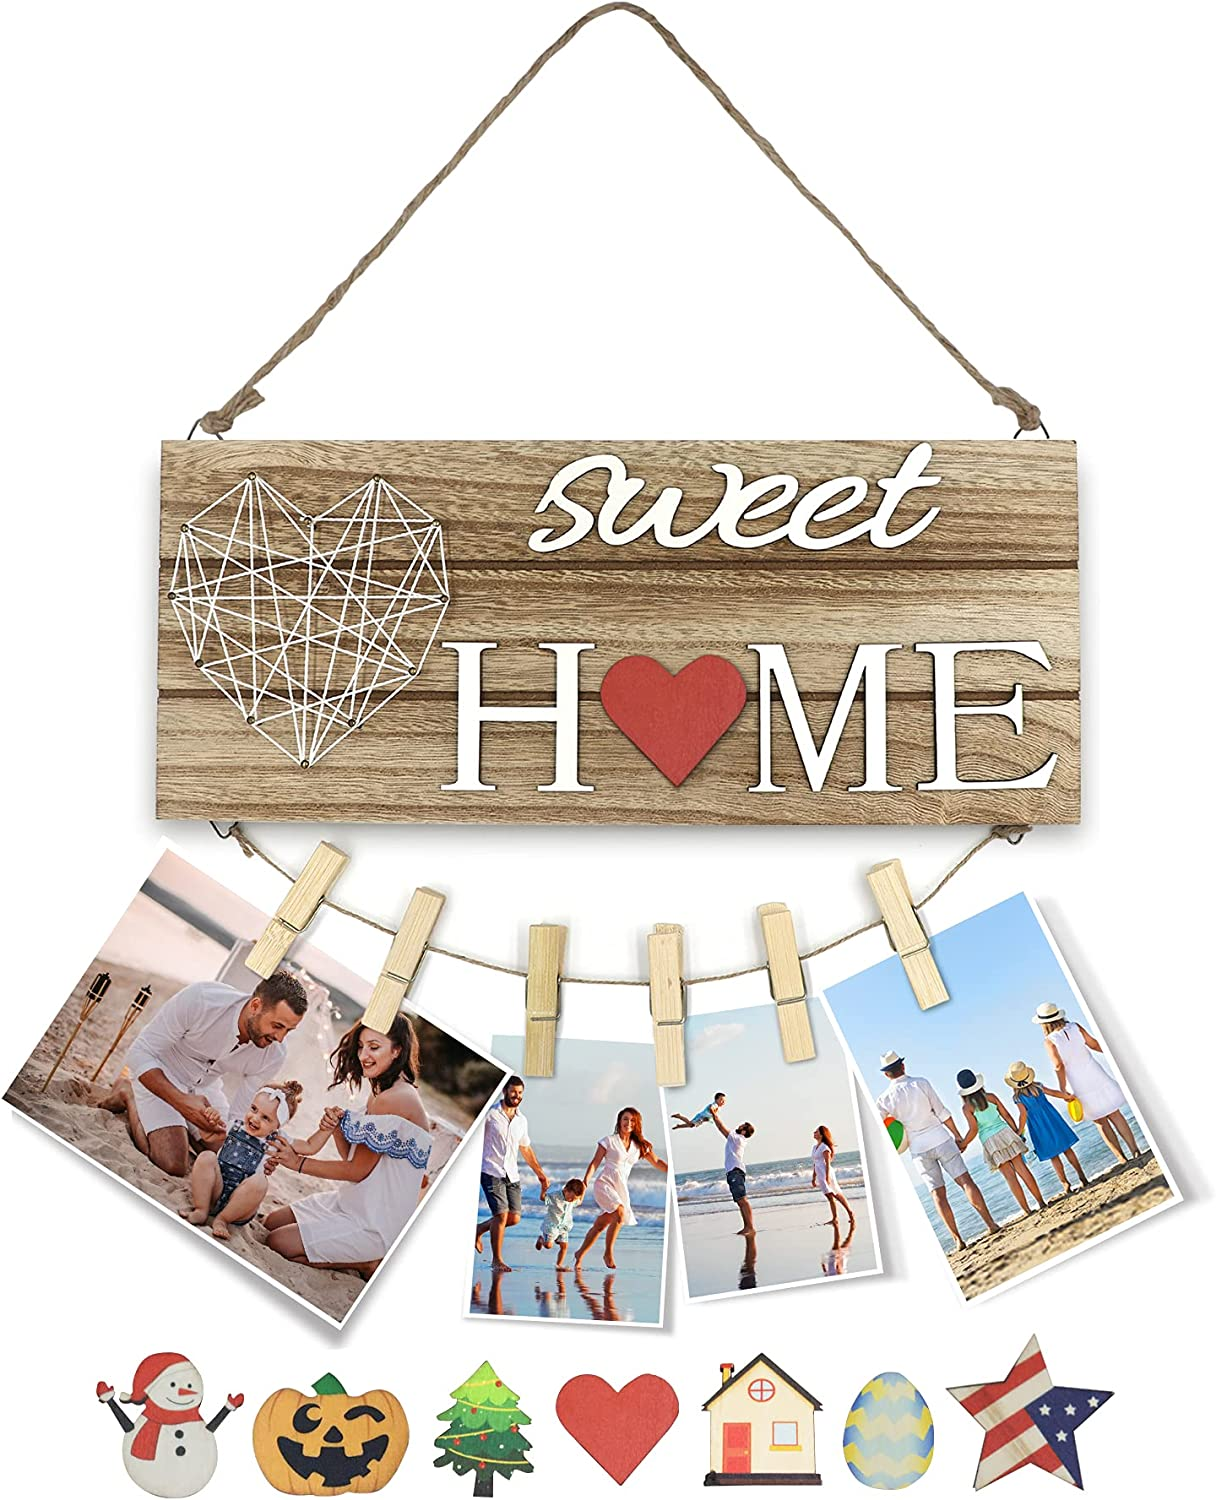 Wooden Seasonal Interchangeable Sweet Home Sign Rectangular Wood Hanging Door Sign for Front Door Decor with 7 Seasonal Ornament Housewarming Gifts Christmas Easter and 6 Pcs Wooden Clips for Picture